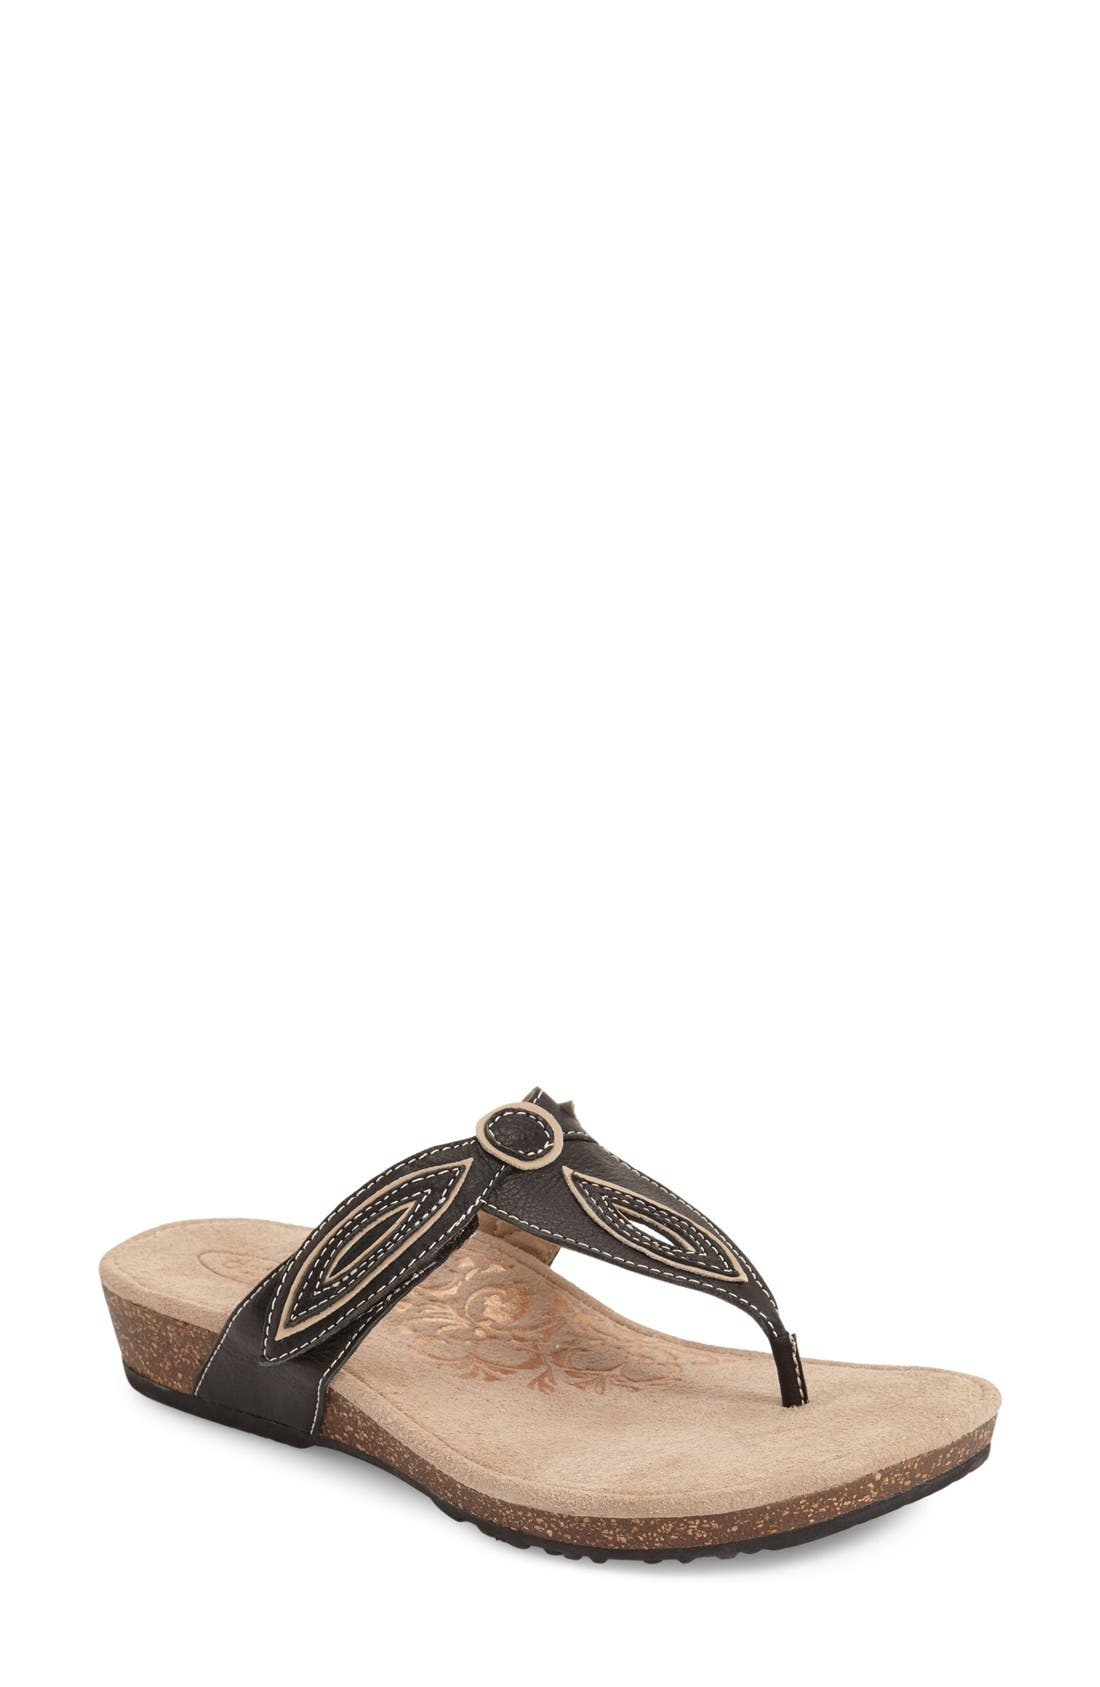 'Terri' Flip Flop,                         Main,                         color, 001